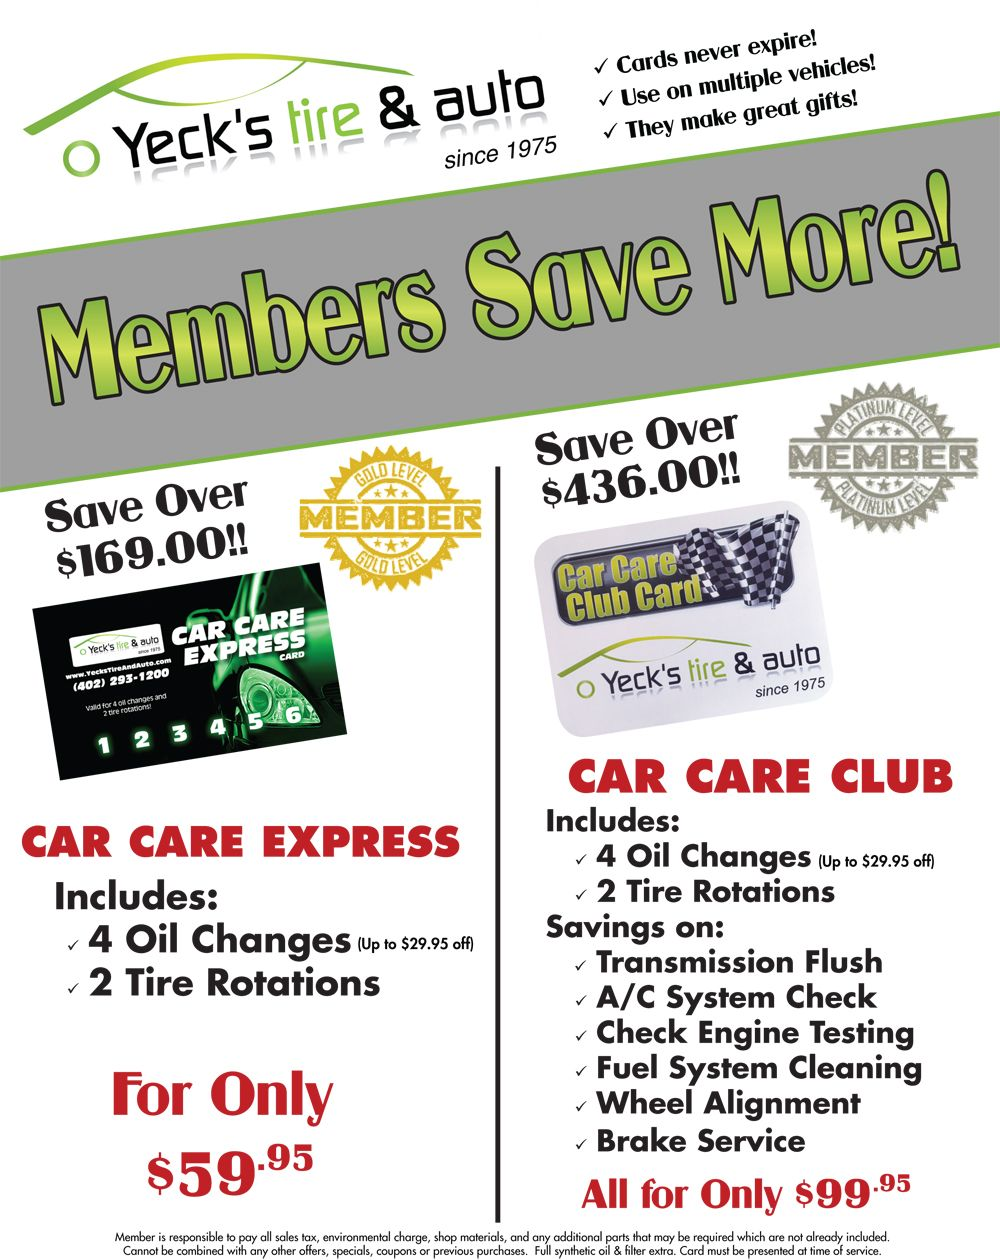 Car Care Club | Yeck's Tire & Auto